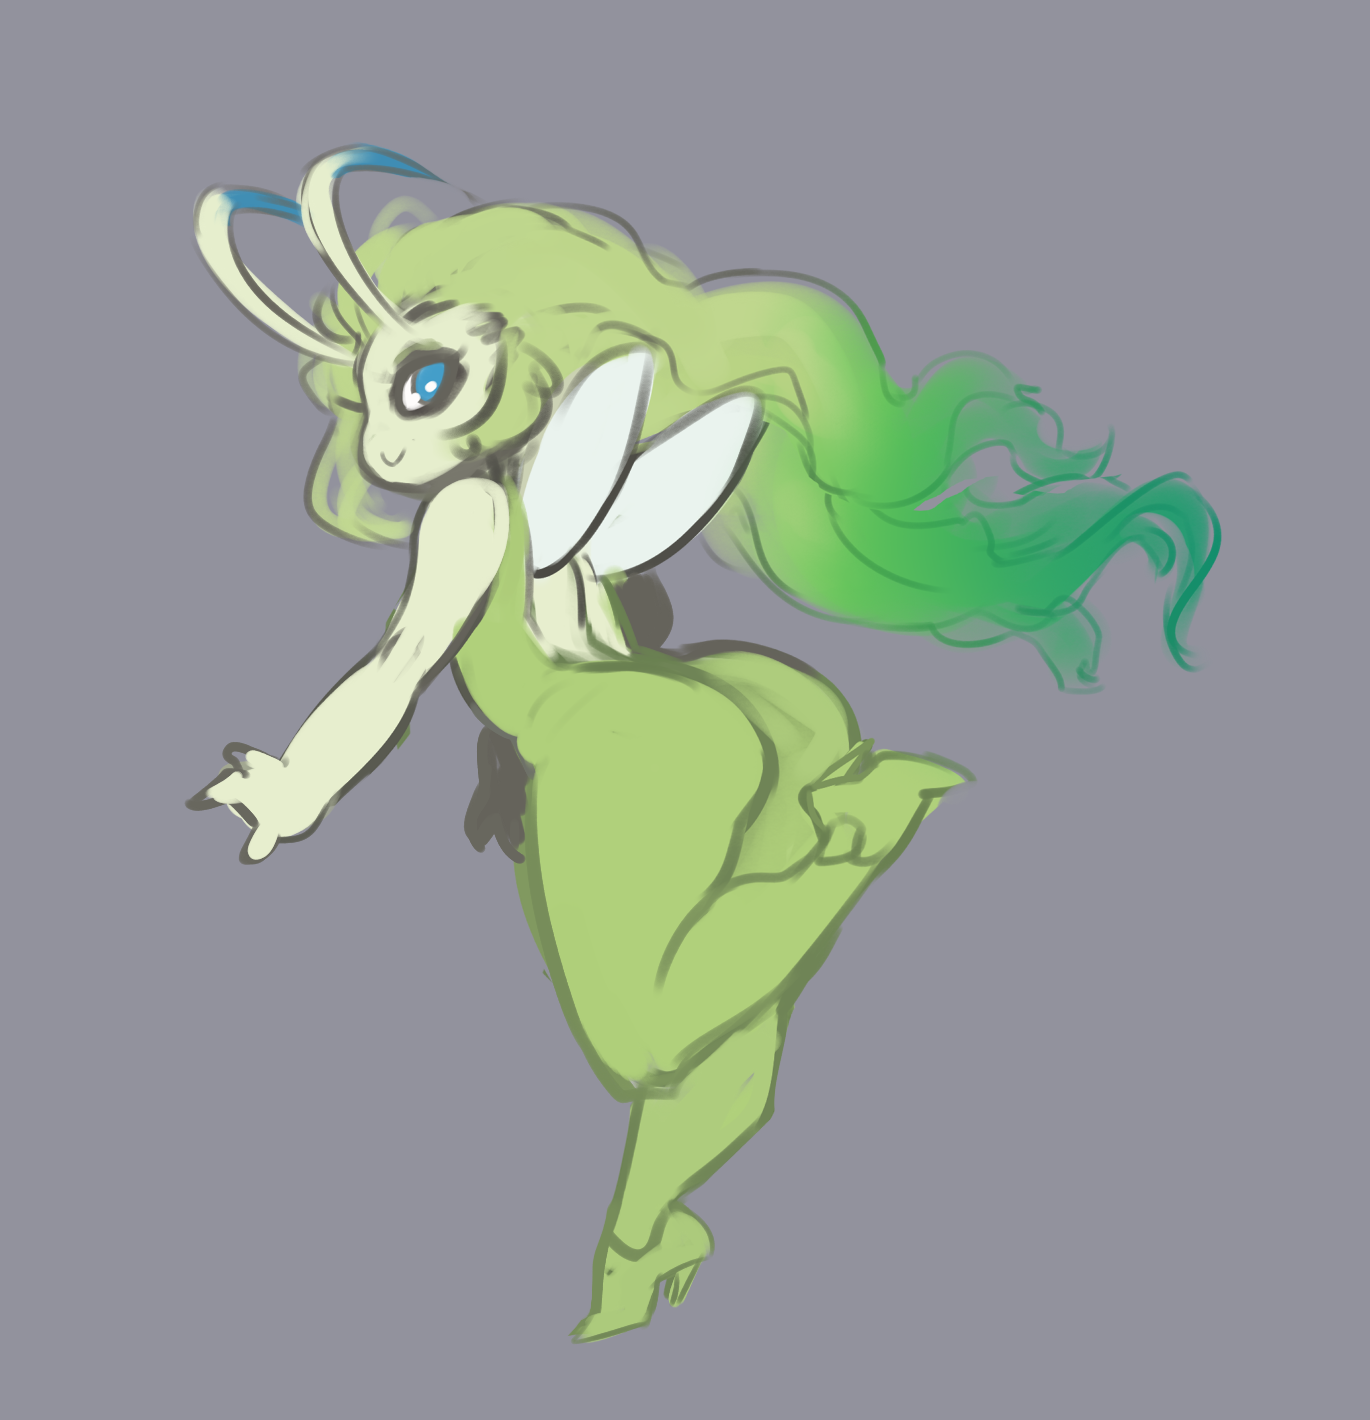 e926 ambiguous_gender blue_eyes butt butt_pose celebi clothed clothing female footwear girly green_hair grey_background hair hi_res high_heels humanoid legendary_pokémon liveforthefunk long_hair looking_back nintendo pokémon shoes simple_background smile solo video_games wings